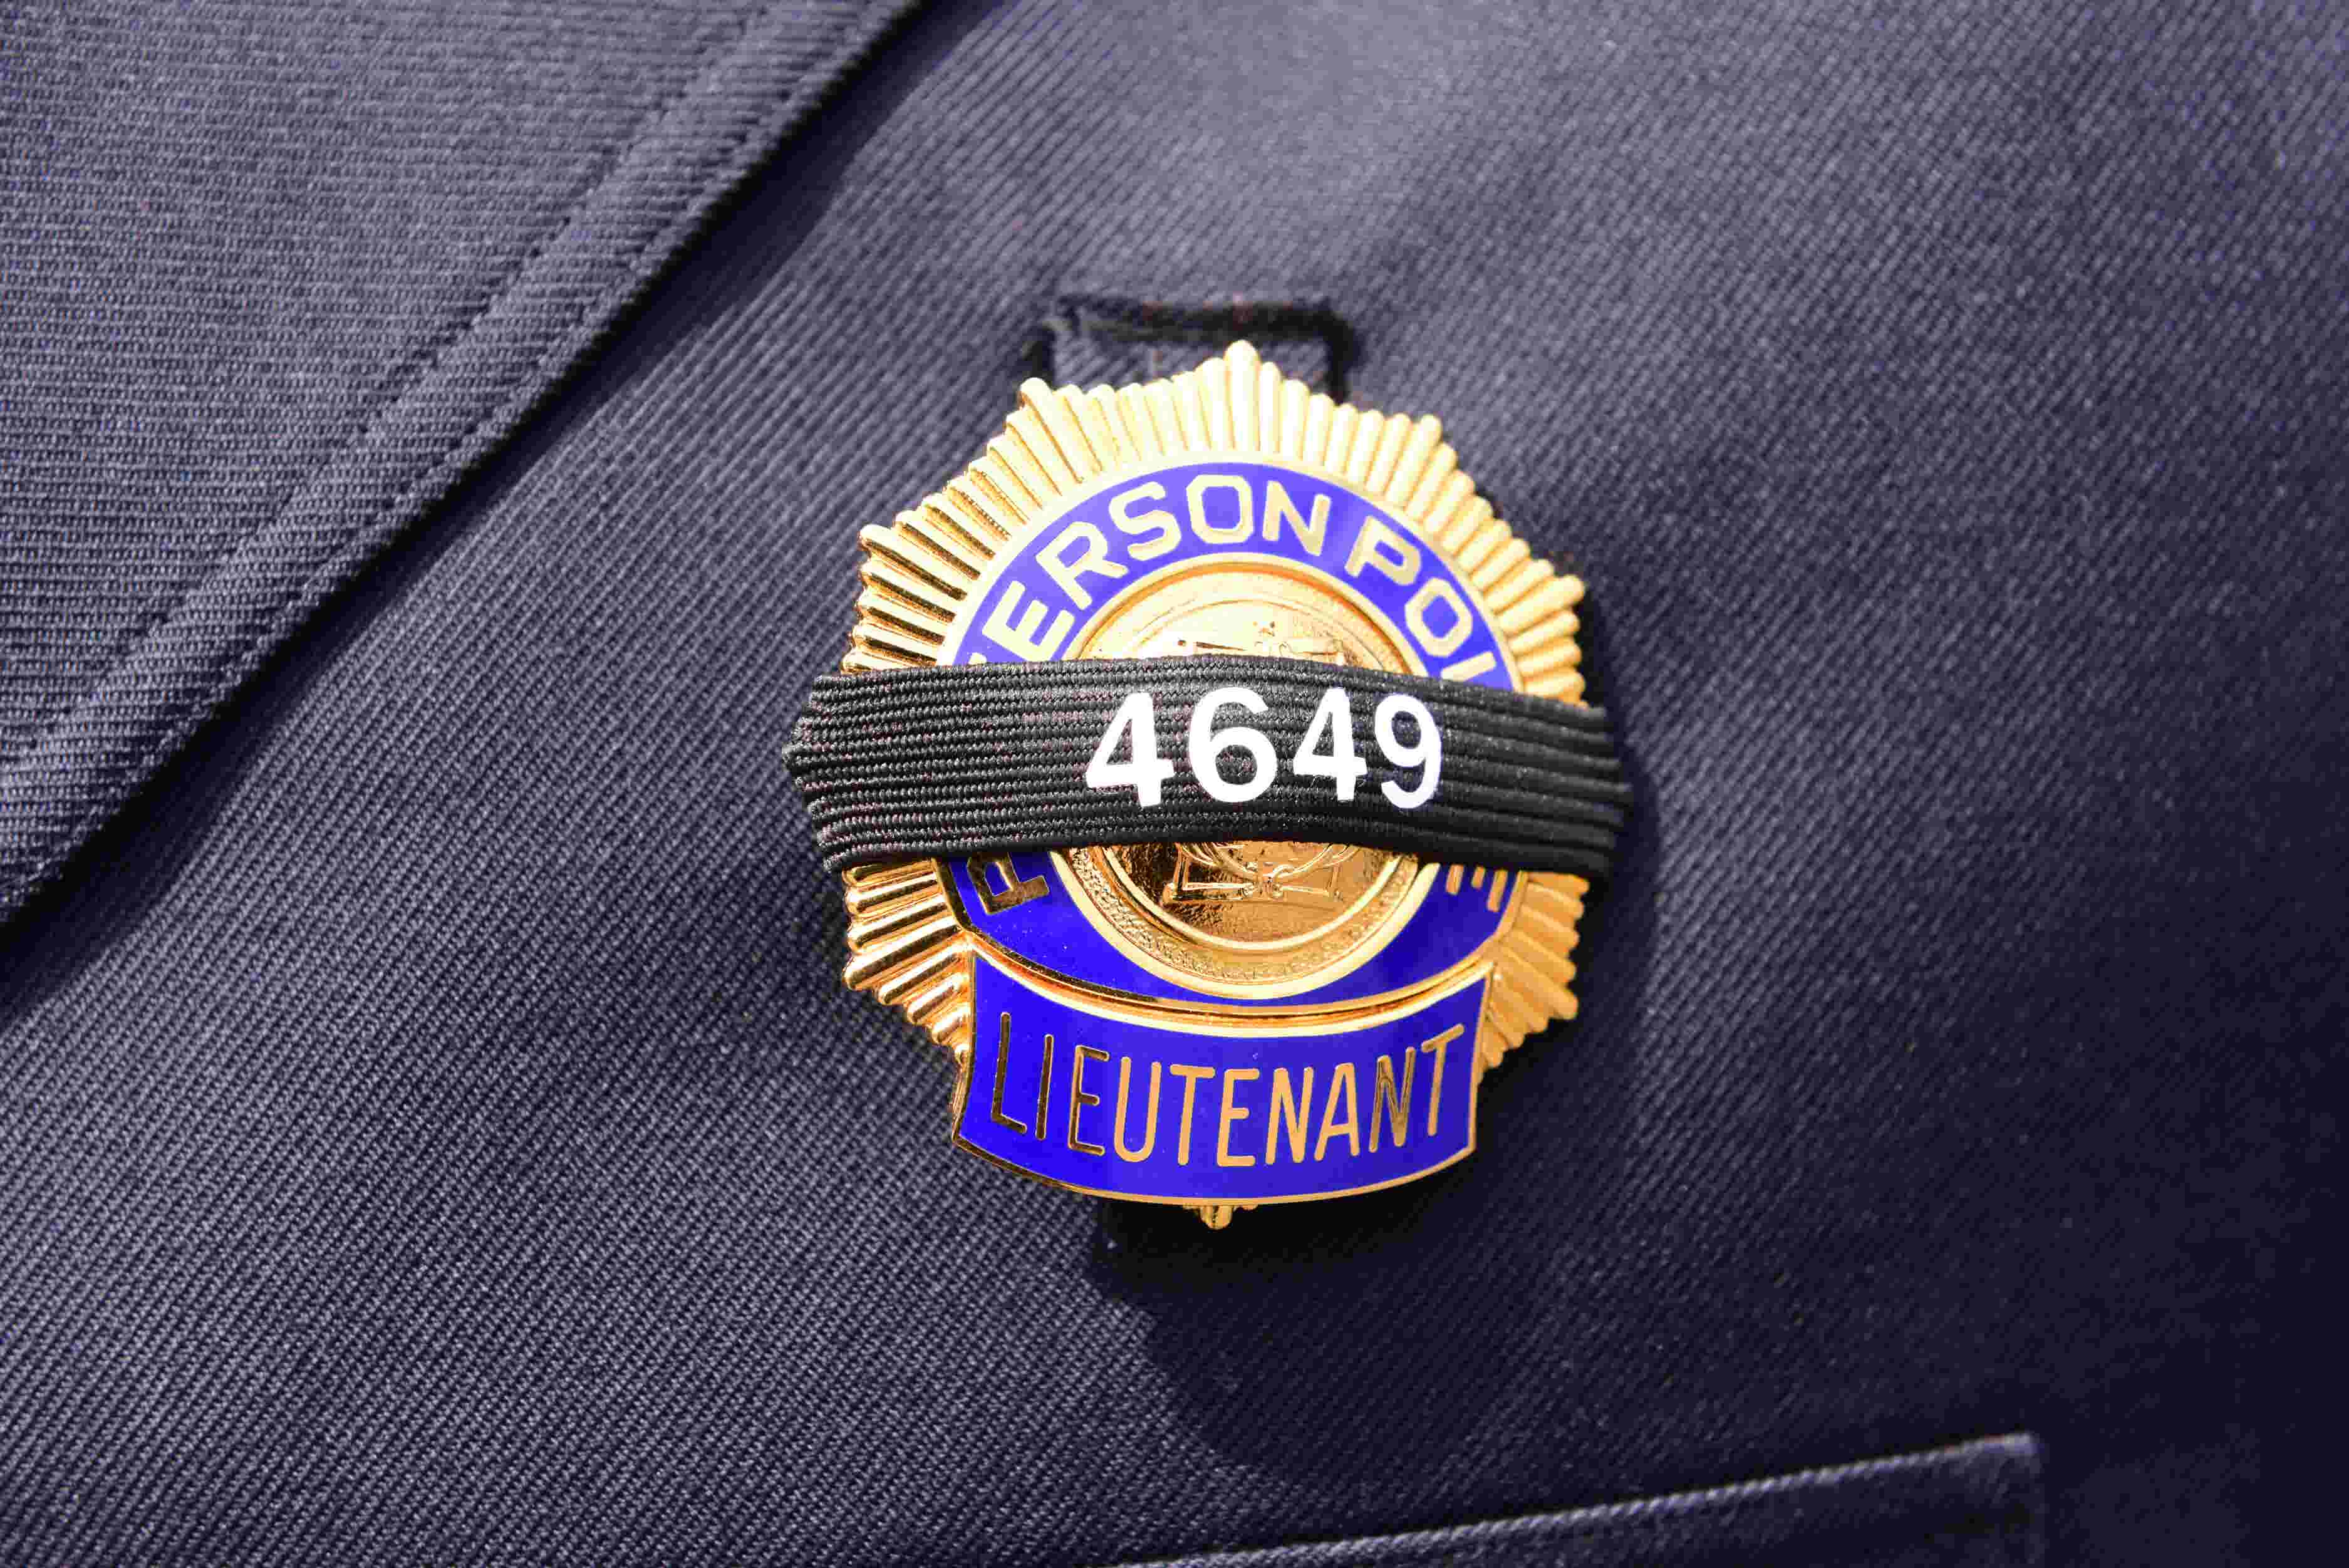 Officers From All Over North Jersey Mourn Paterson Officer Tamby Yagan